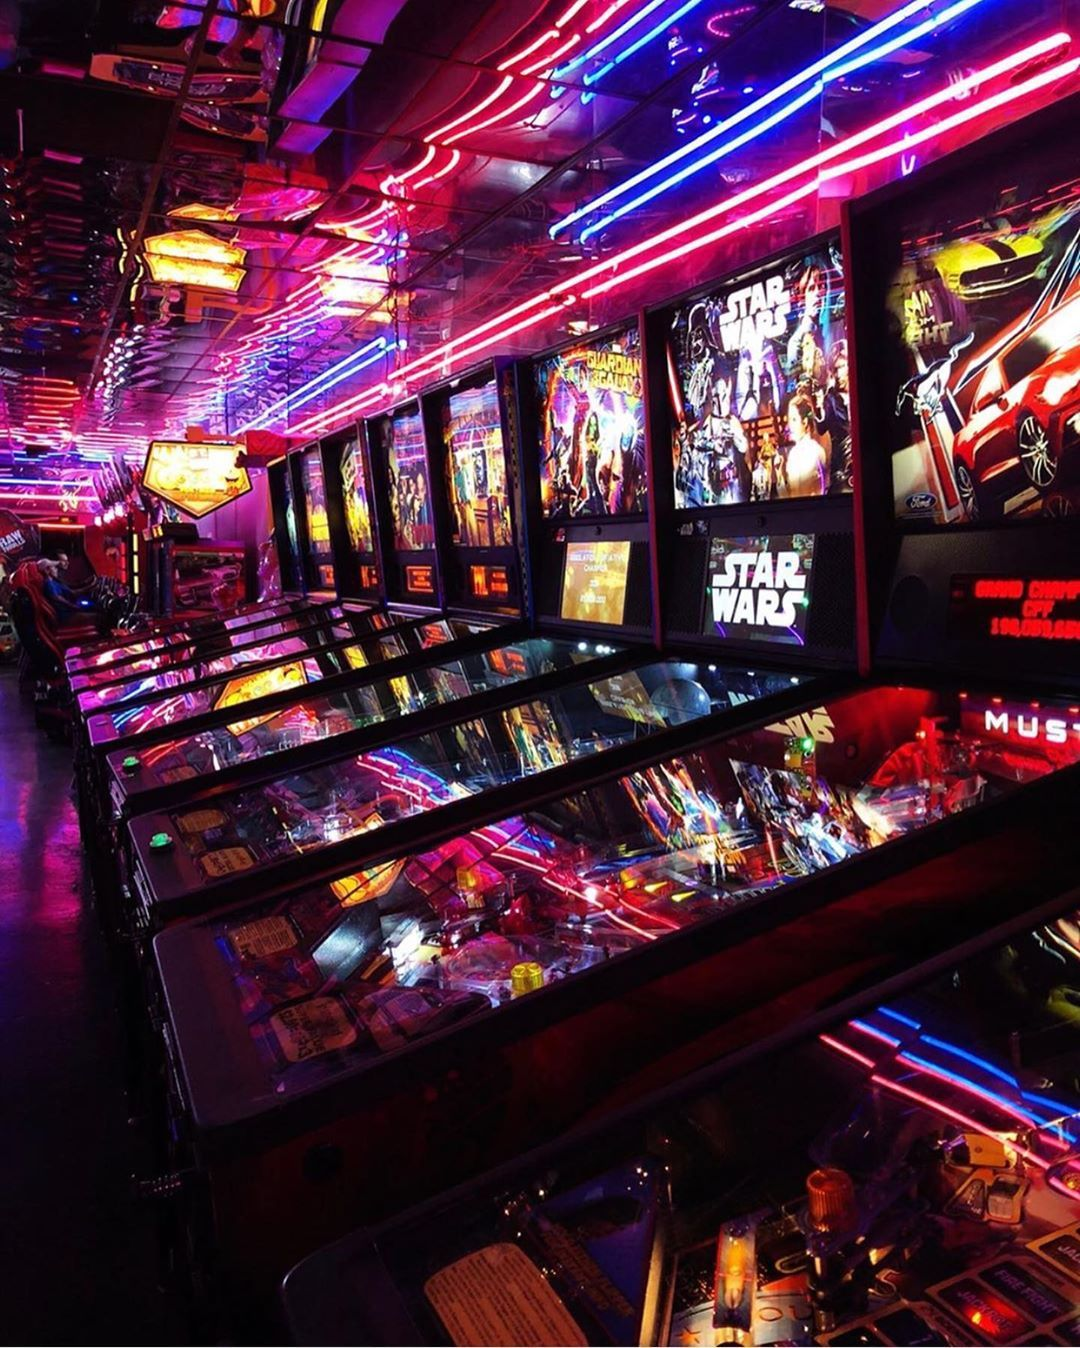 Neon Retro Arcade Games Table Playing Synthwave New Retrowave Retro Arcade Games Retro Arcade Arcade